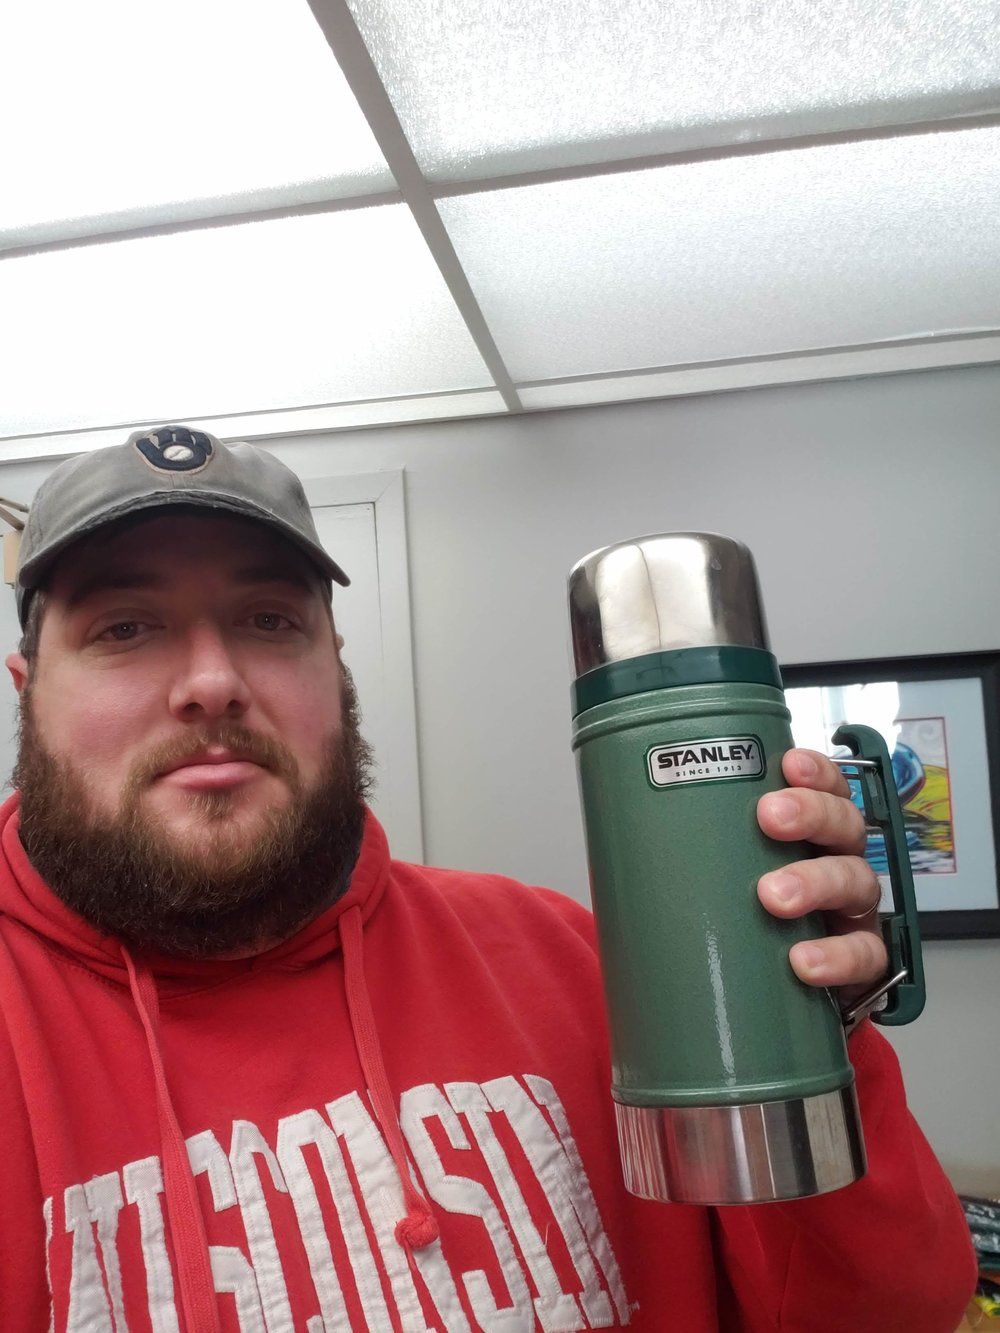 Now that's a Thermos!